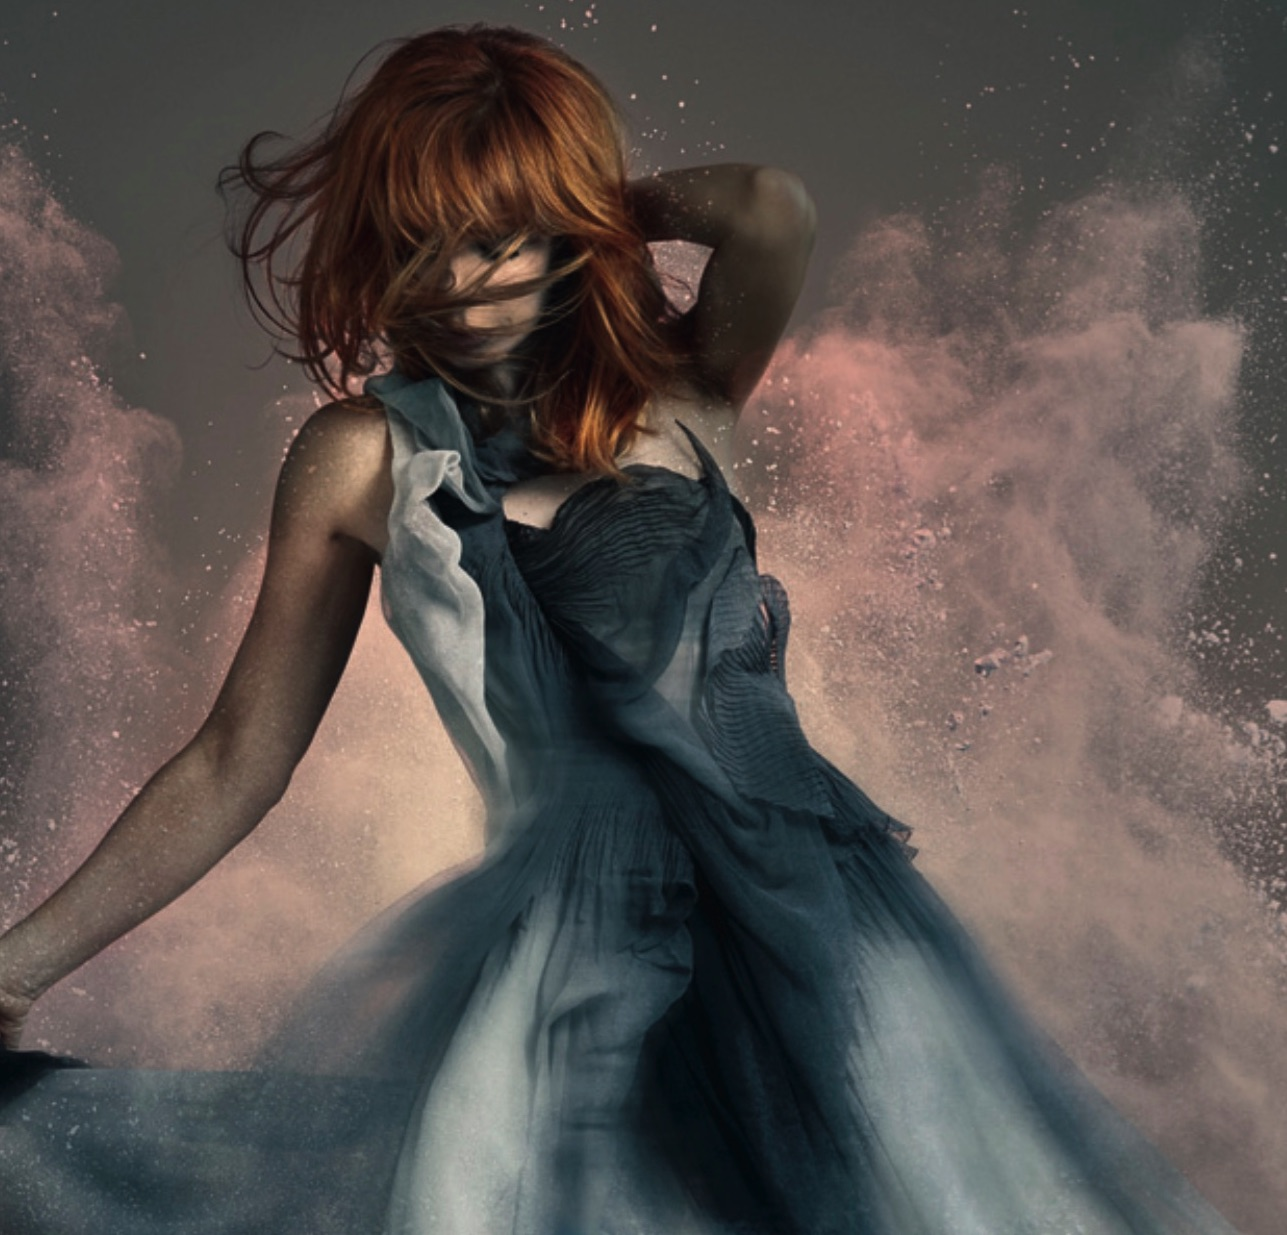 mylène farmer 2018 album